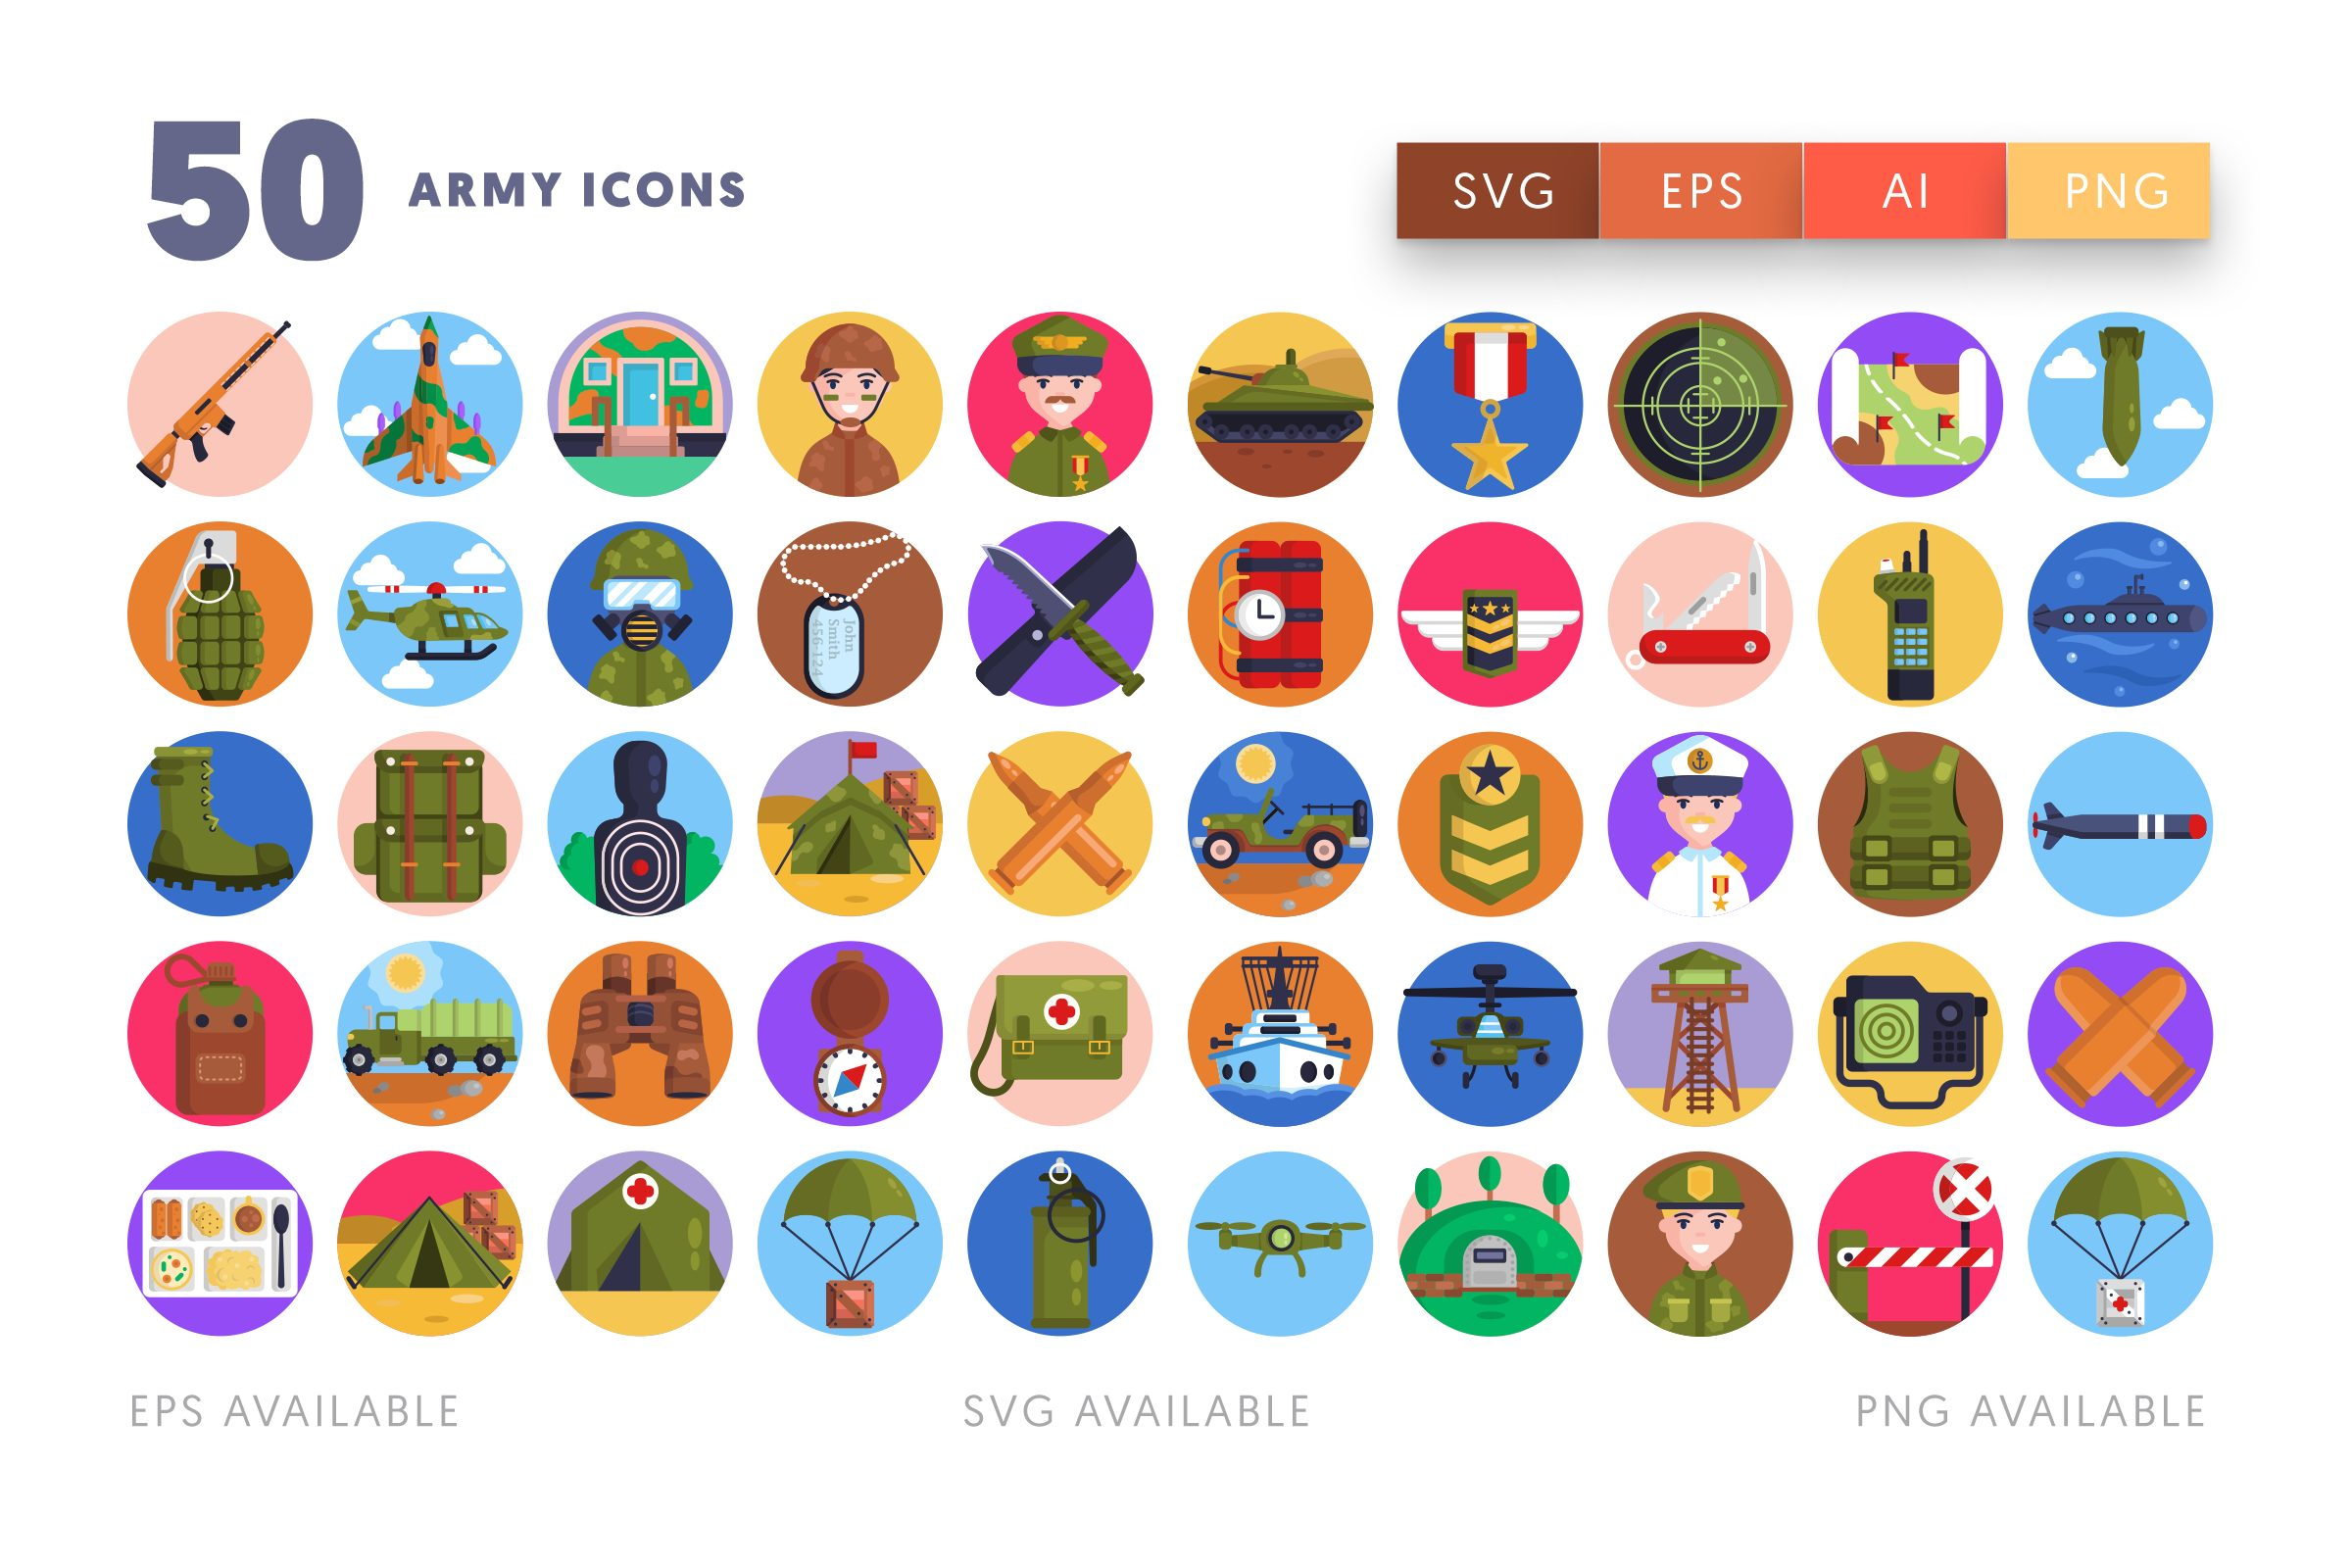 Army icons png/svg/eps